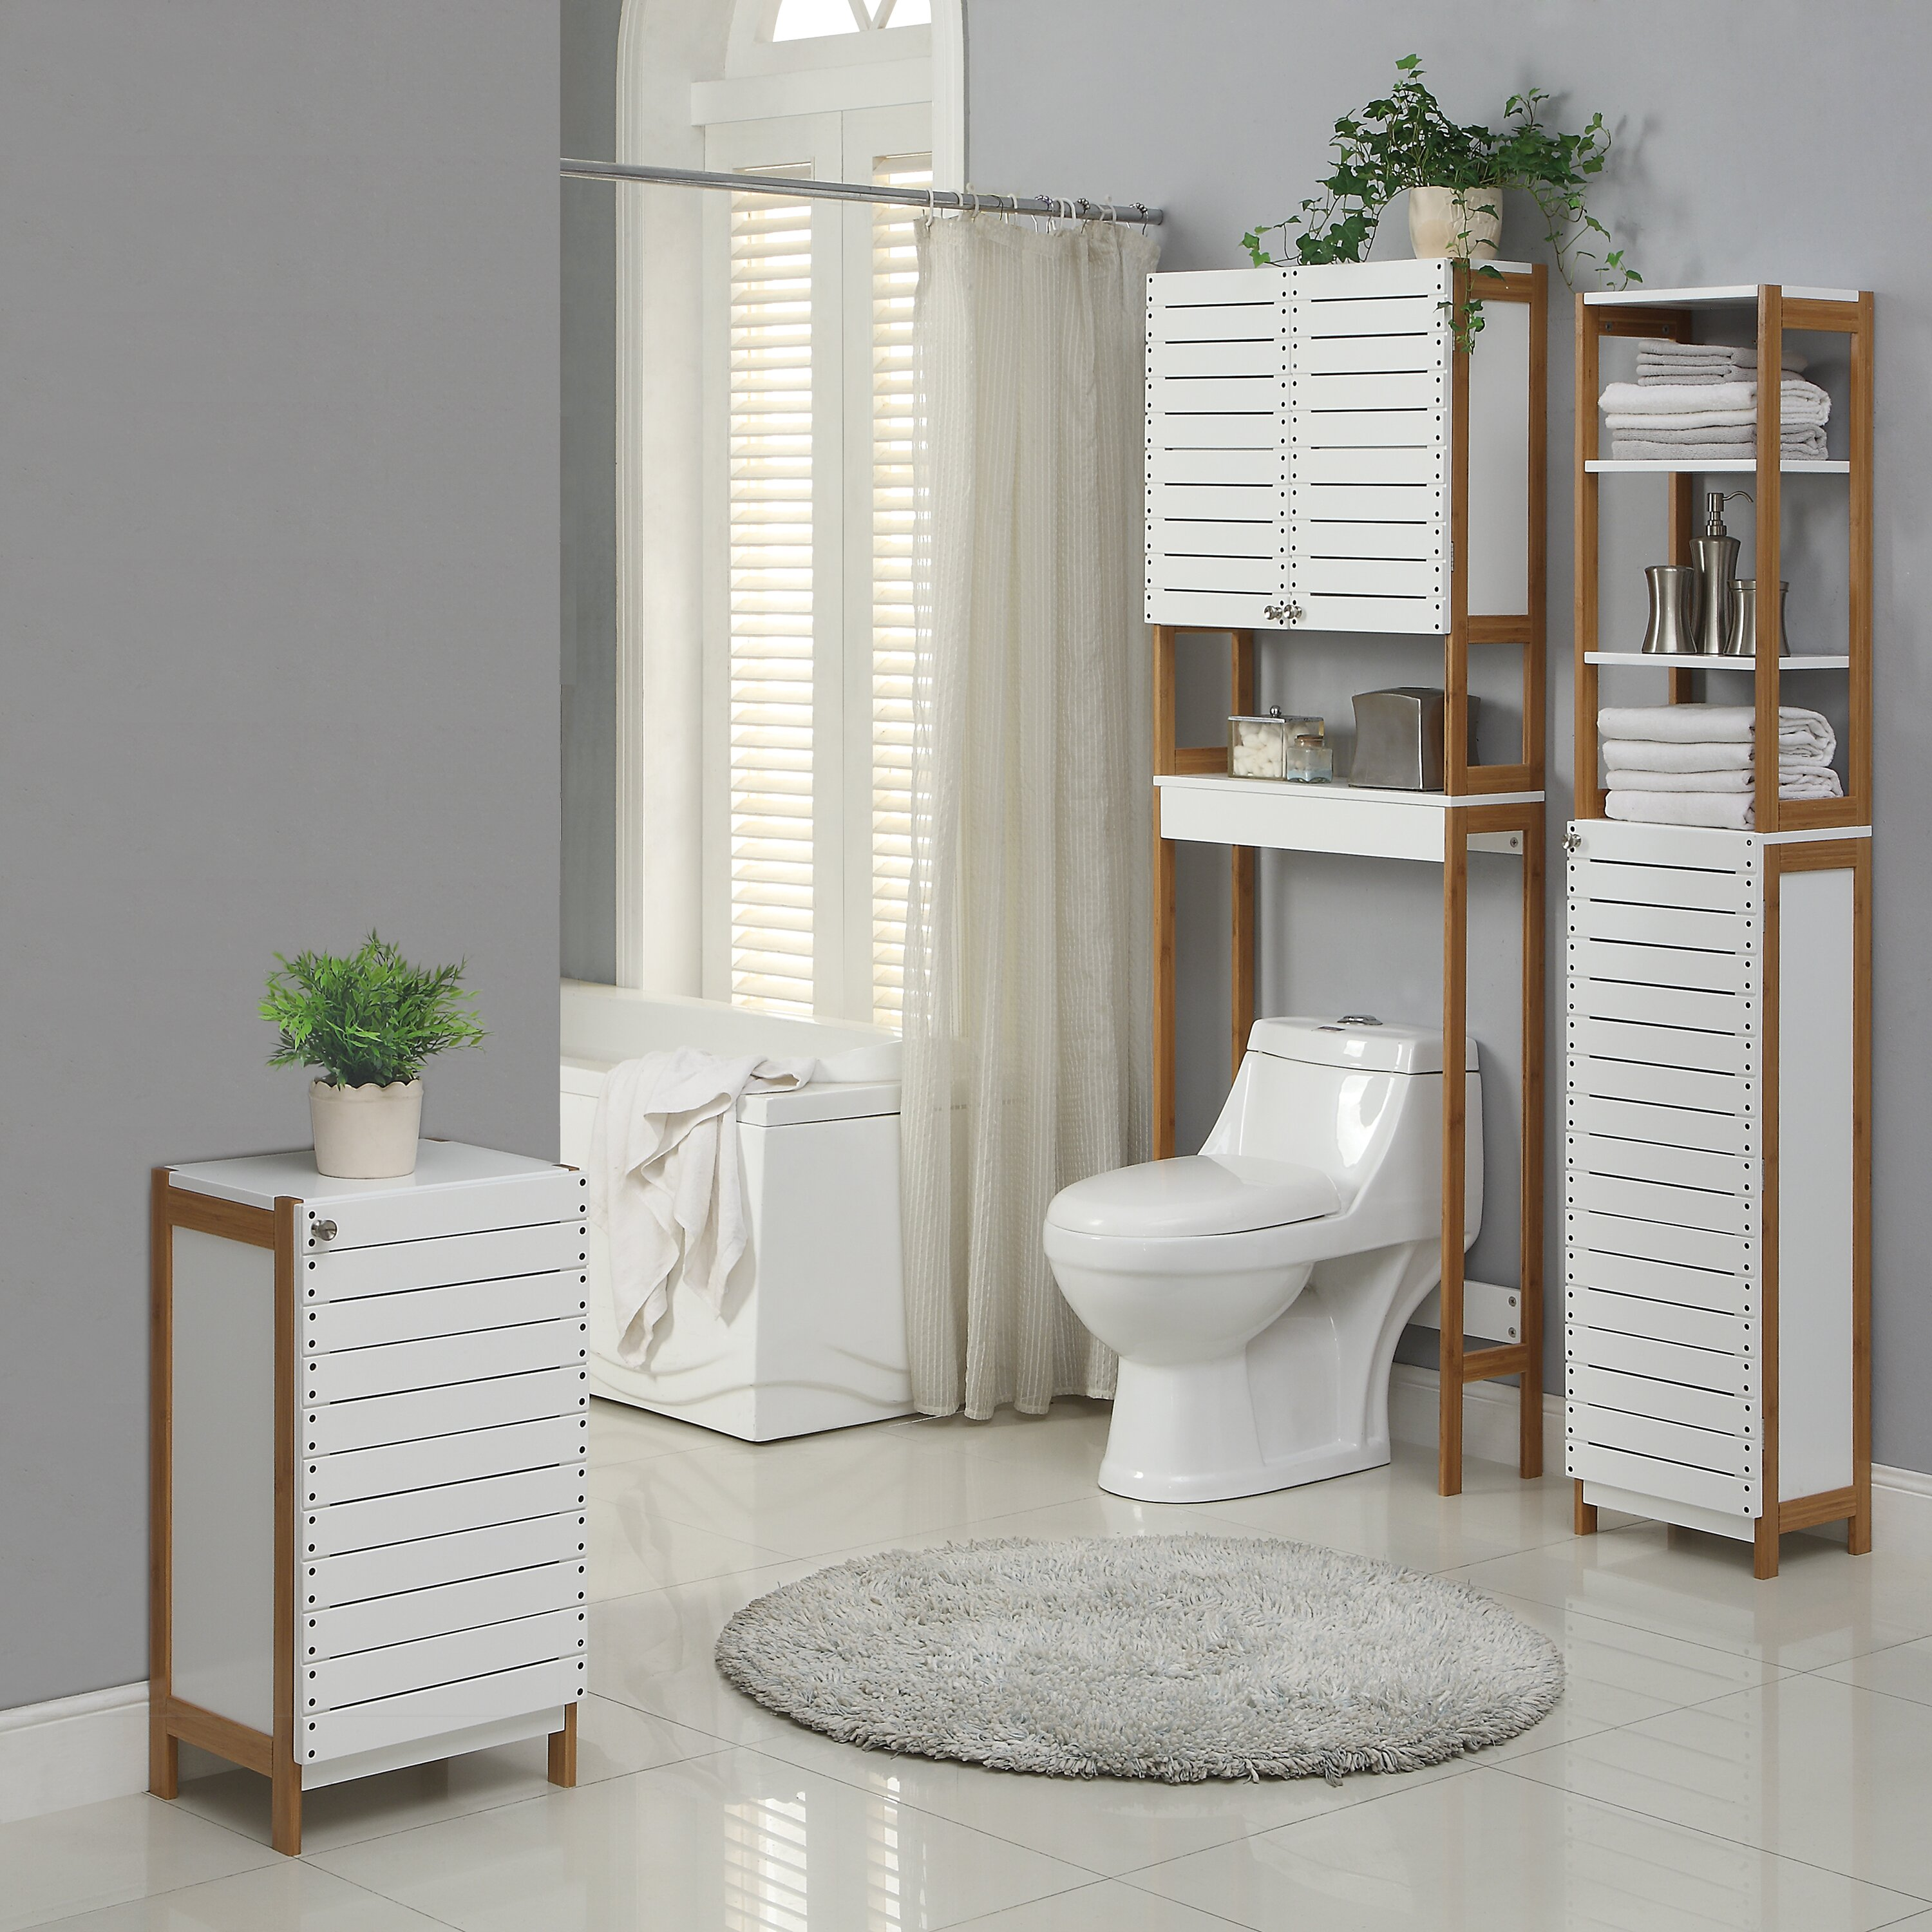 oia rendition w x h over the toilet storage reviews wayfair. Black Bedroom Furniture Sets. Home Design Ideas